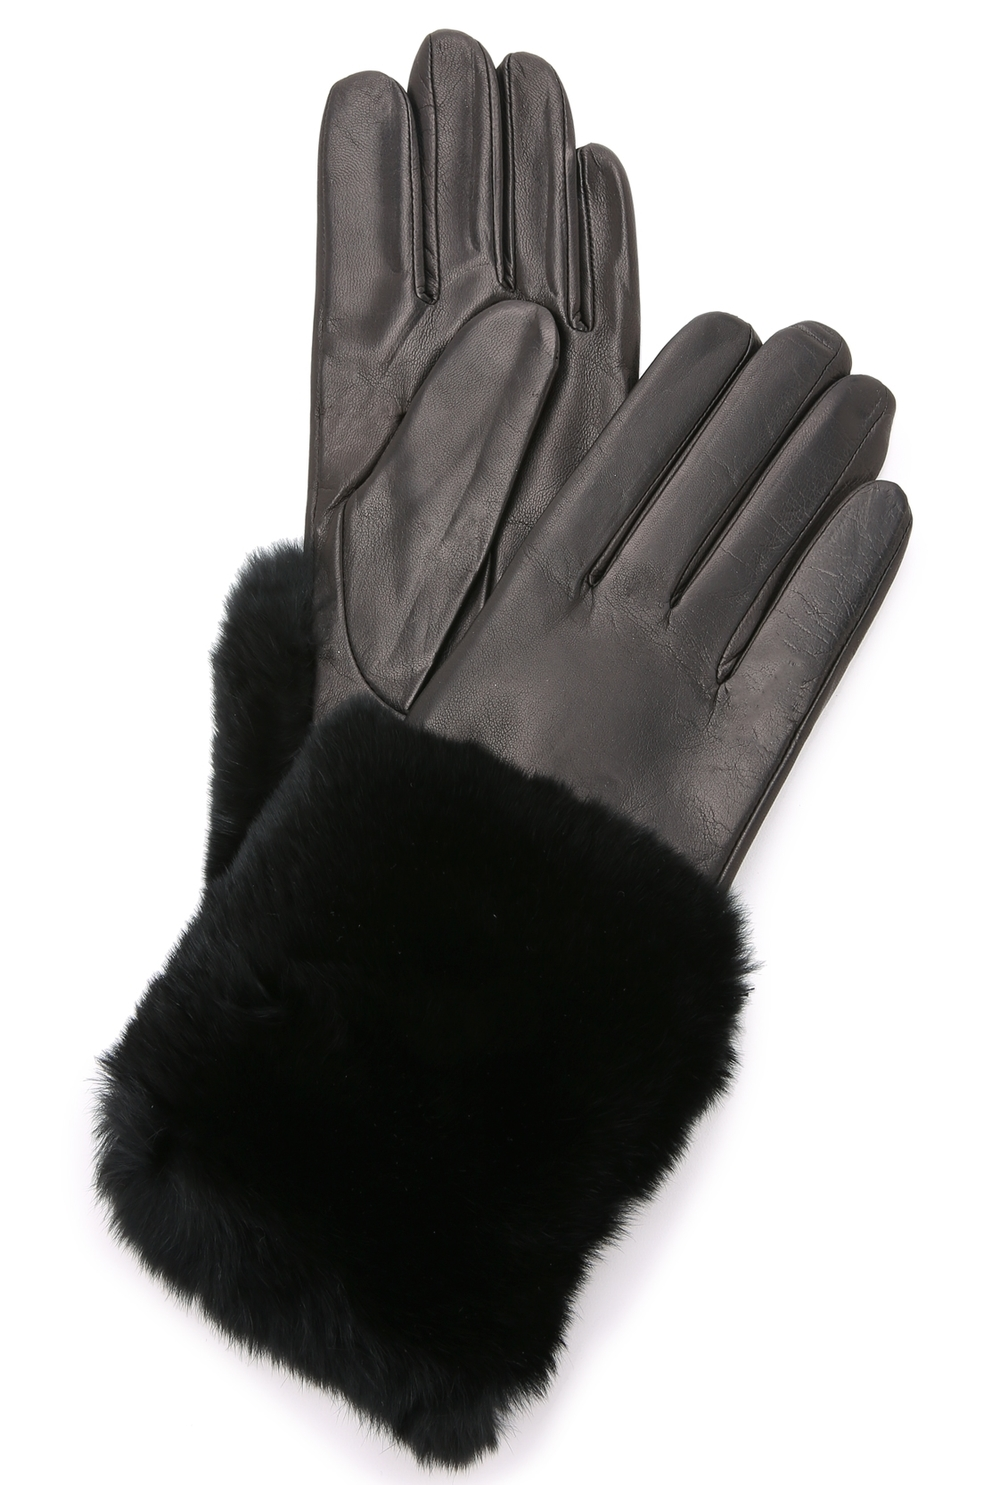 Luxe gloves  for delicate hands...